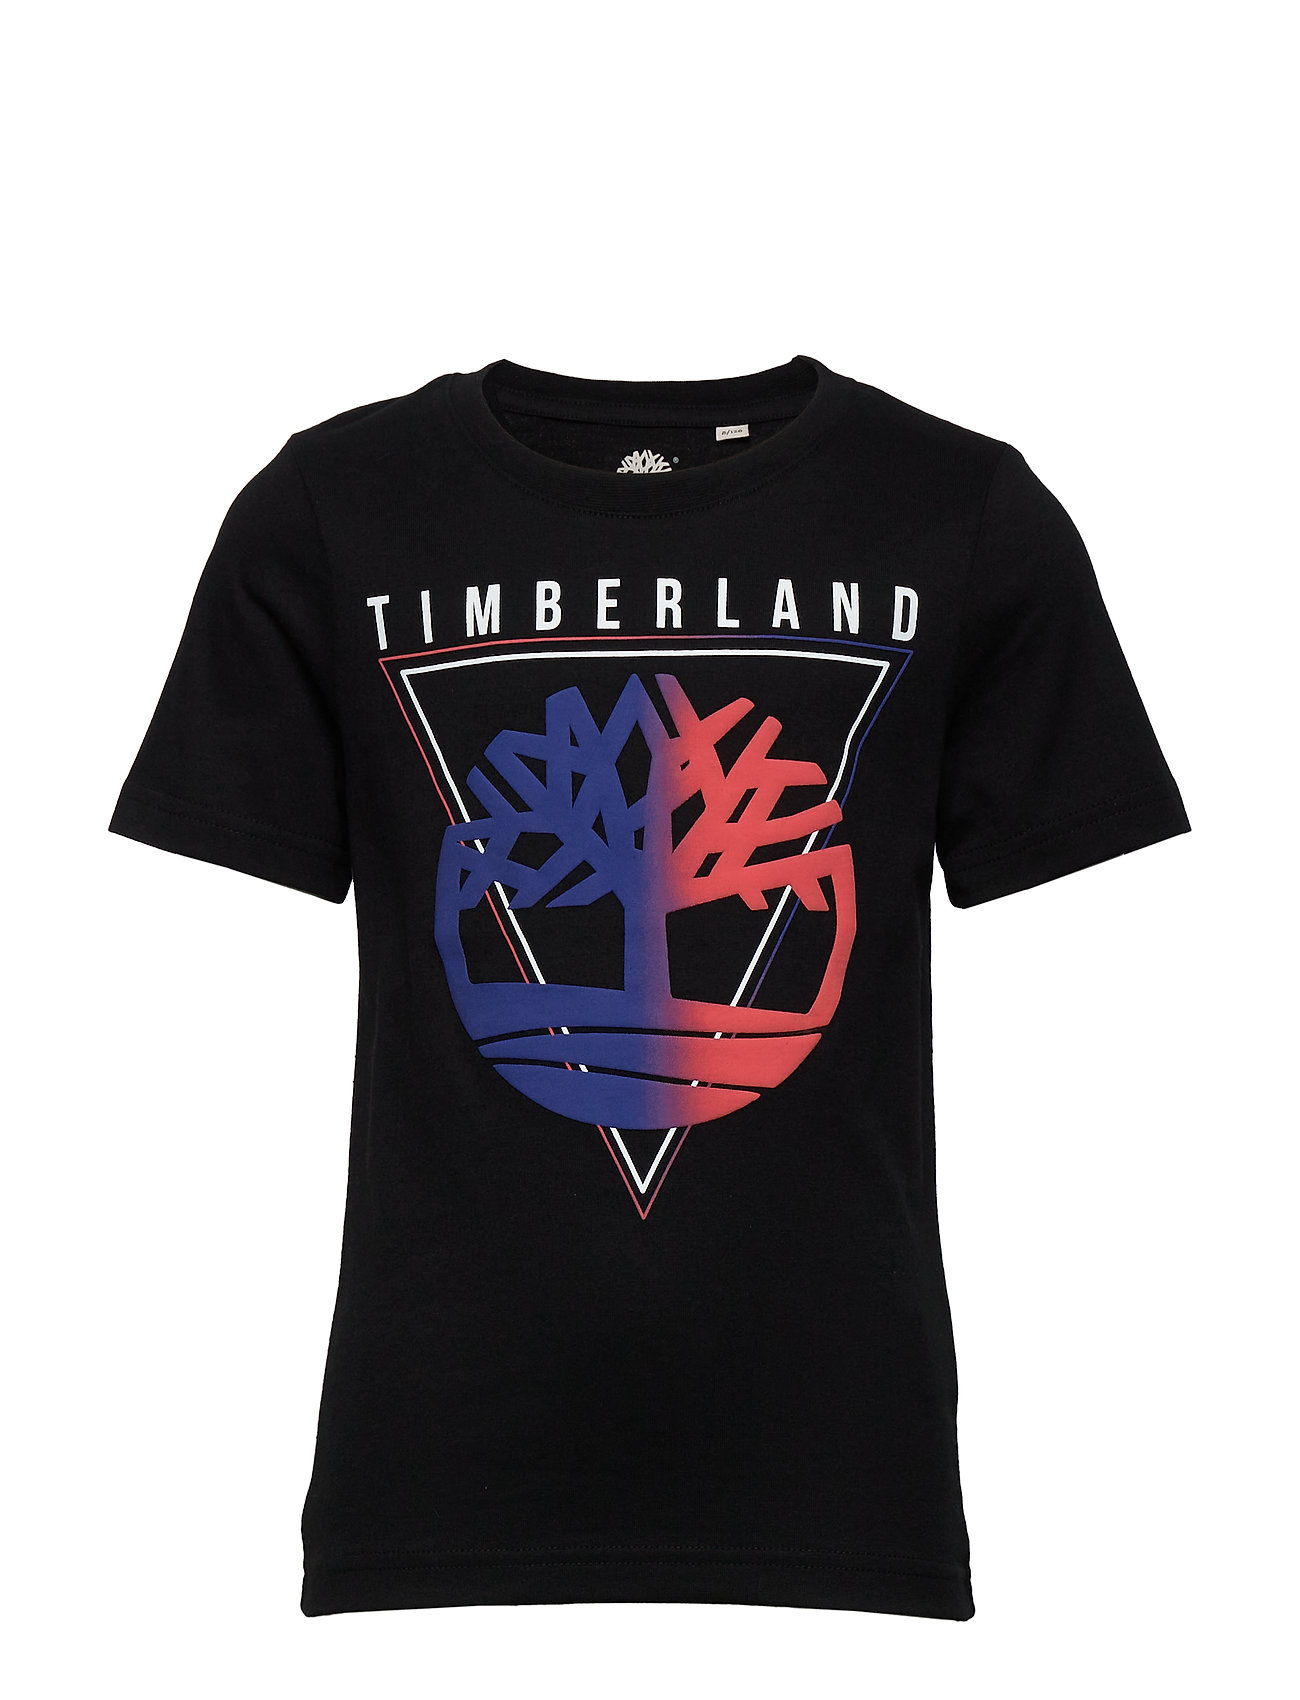 Timberland SHORT SLEEVES TEE-SHIRT - BLACK